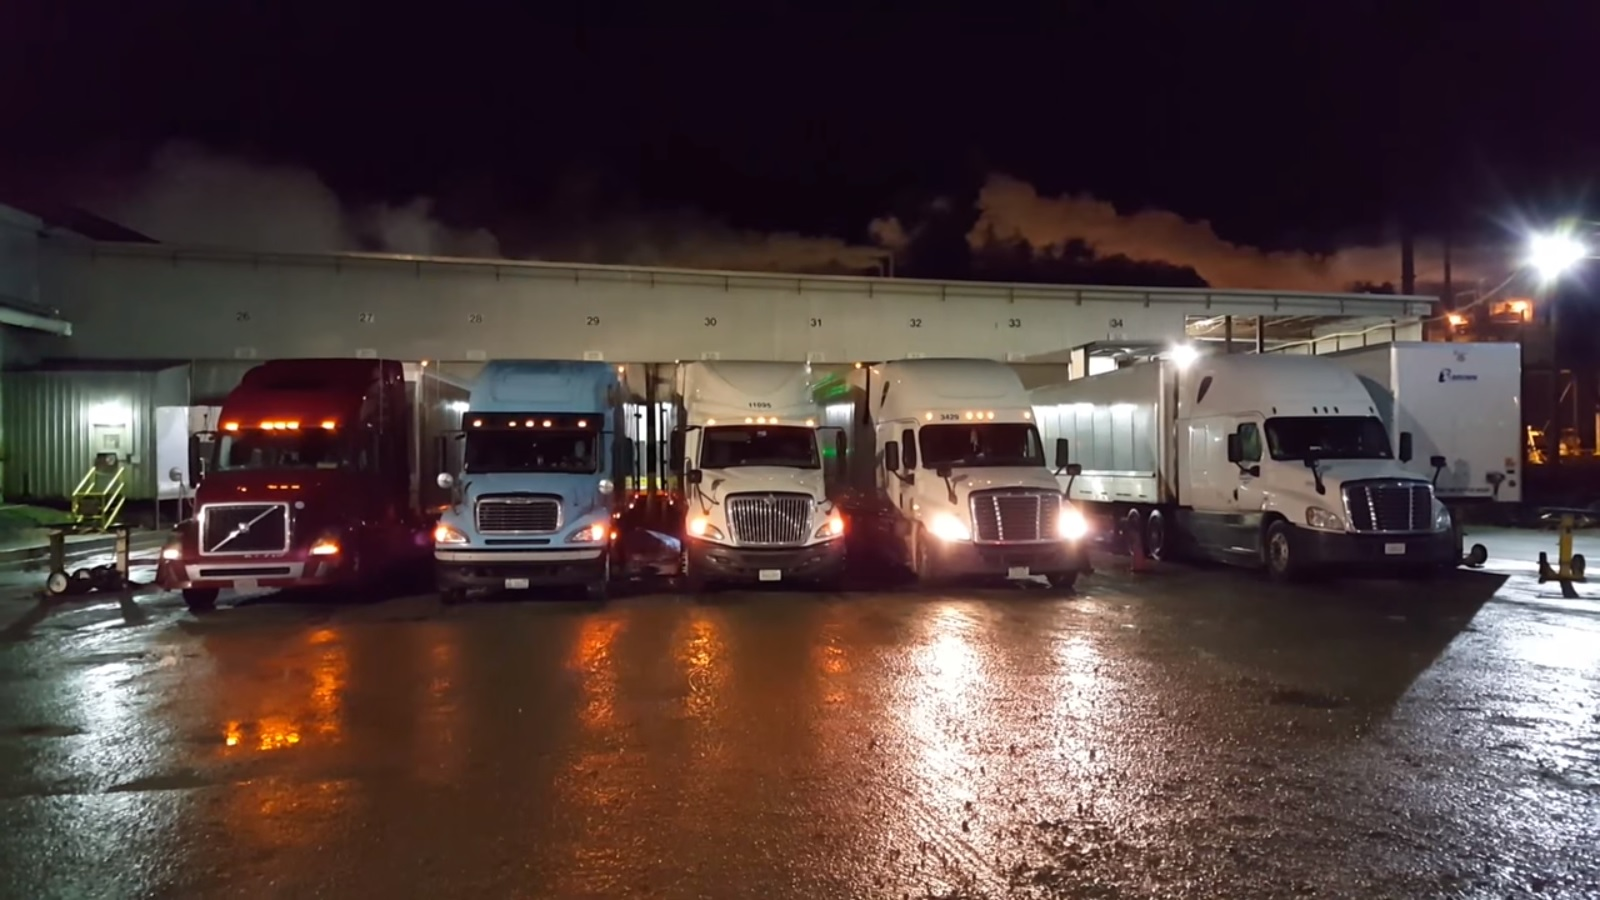 Night loading at papermill